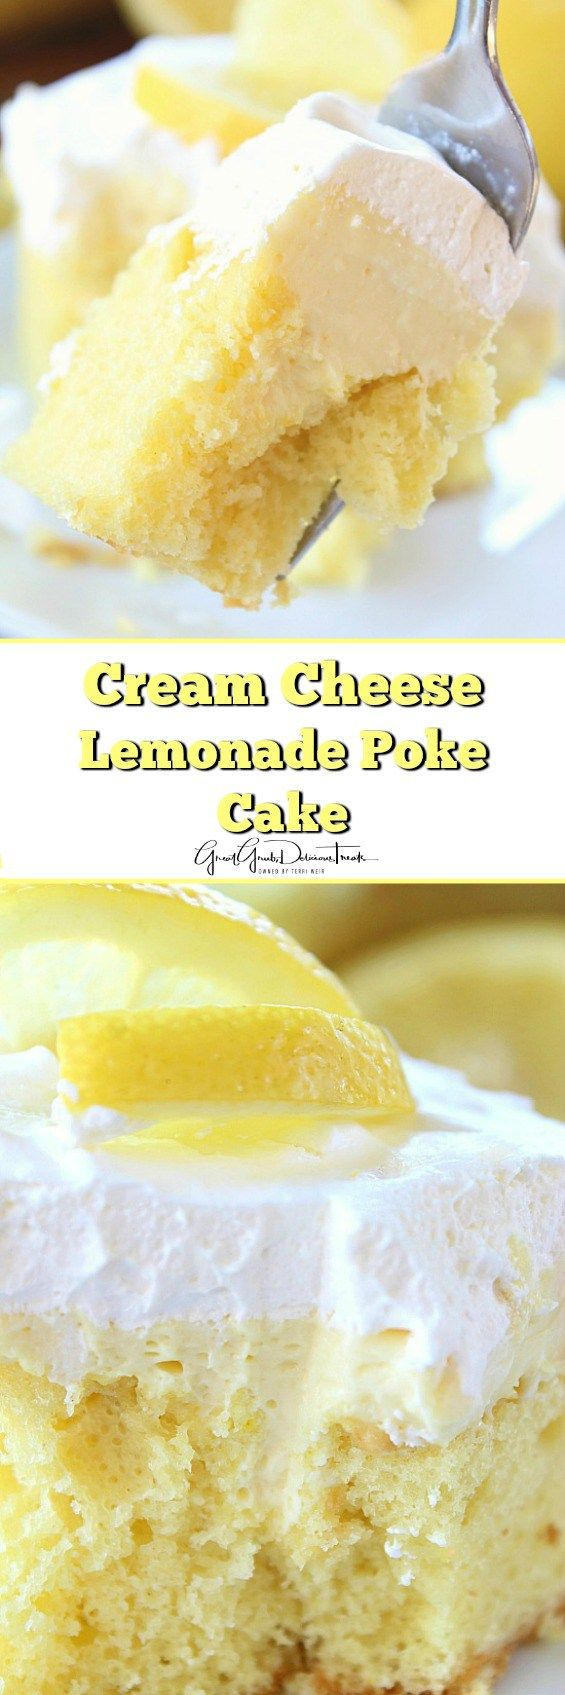 Cream Cheese Lemonade Poke Cake